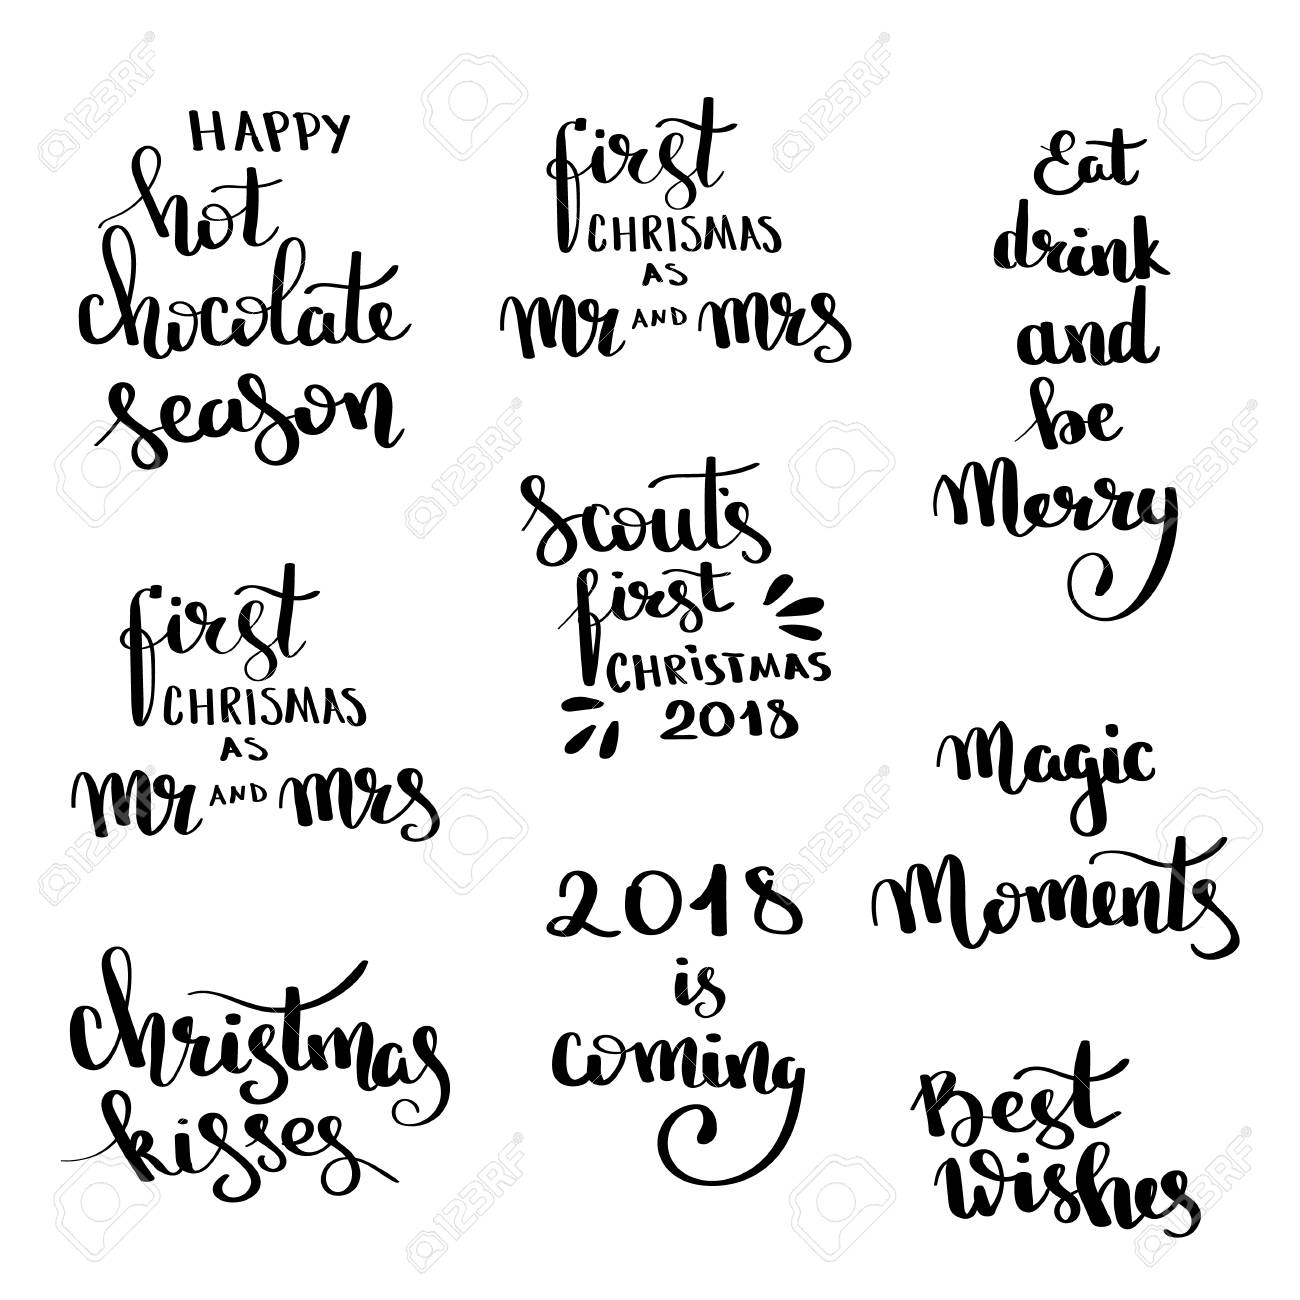 Christmas Hand Drawn Lettering Design Set Handwritten Quotes And Wishes Modern Calligraphy